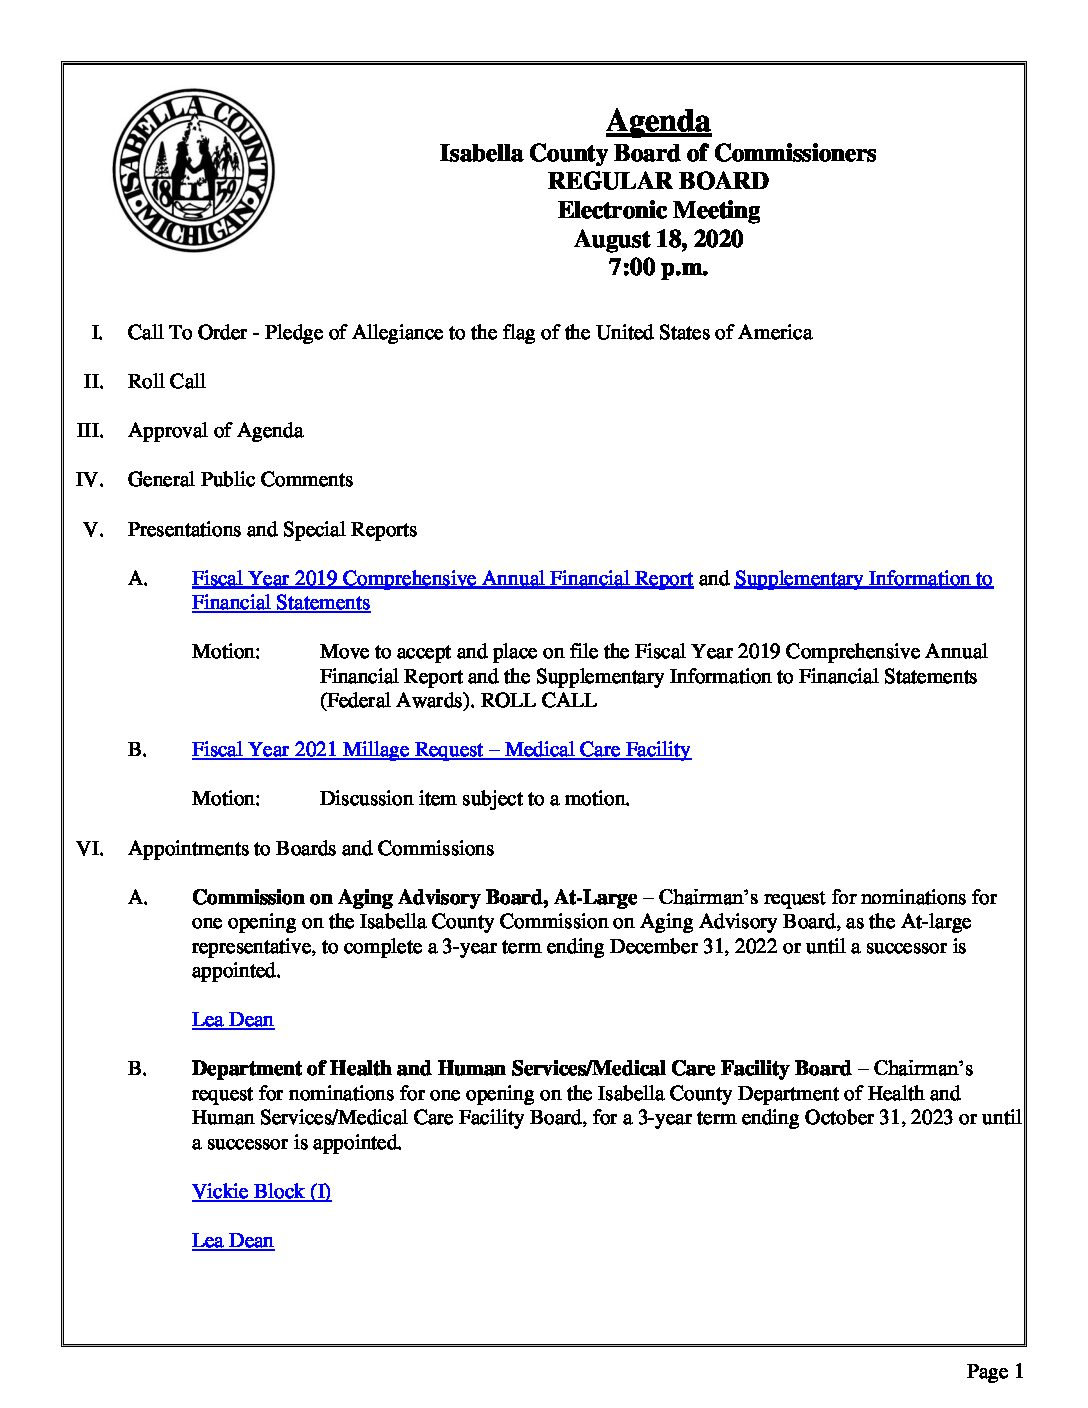 preview image of first page August 18, 2020 Agenda